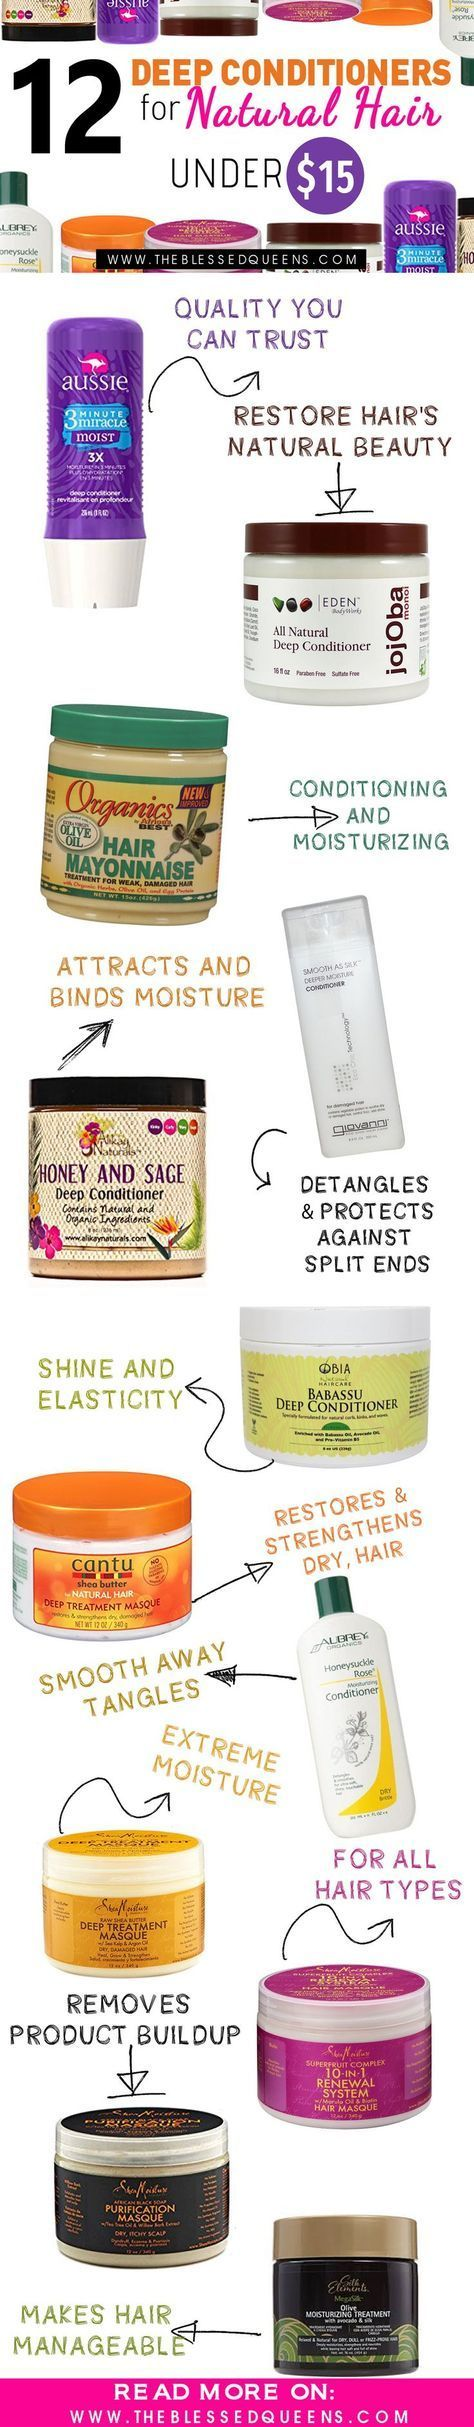 12 Deep Conditioners for Natural Hair Under $15